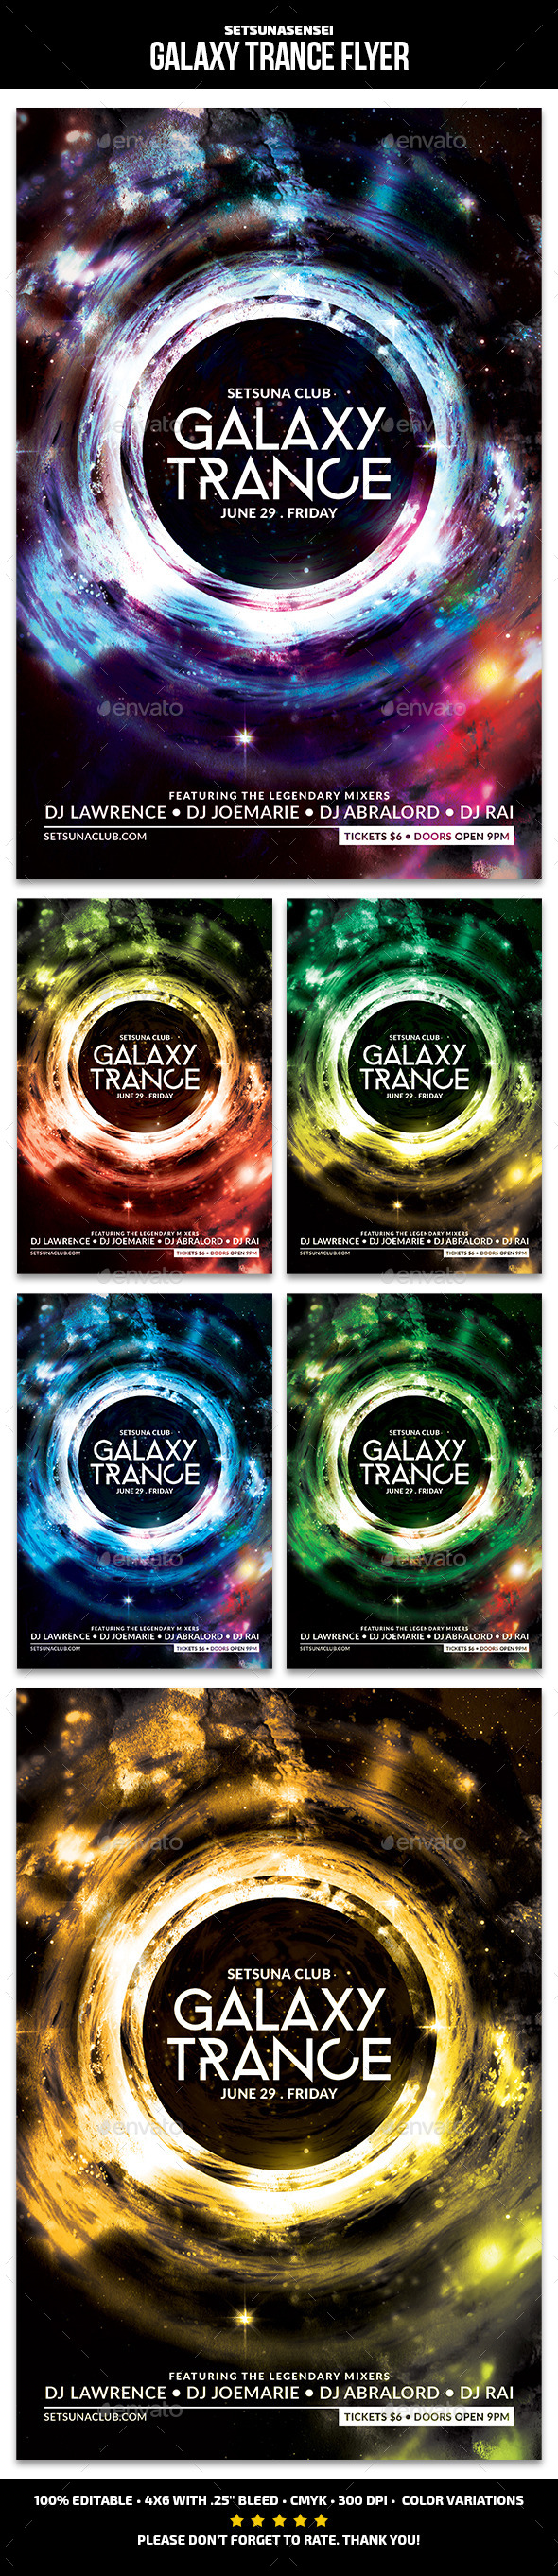 Galaxy Trance Flyer - Clubs & Parties Events